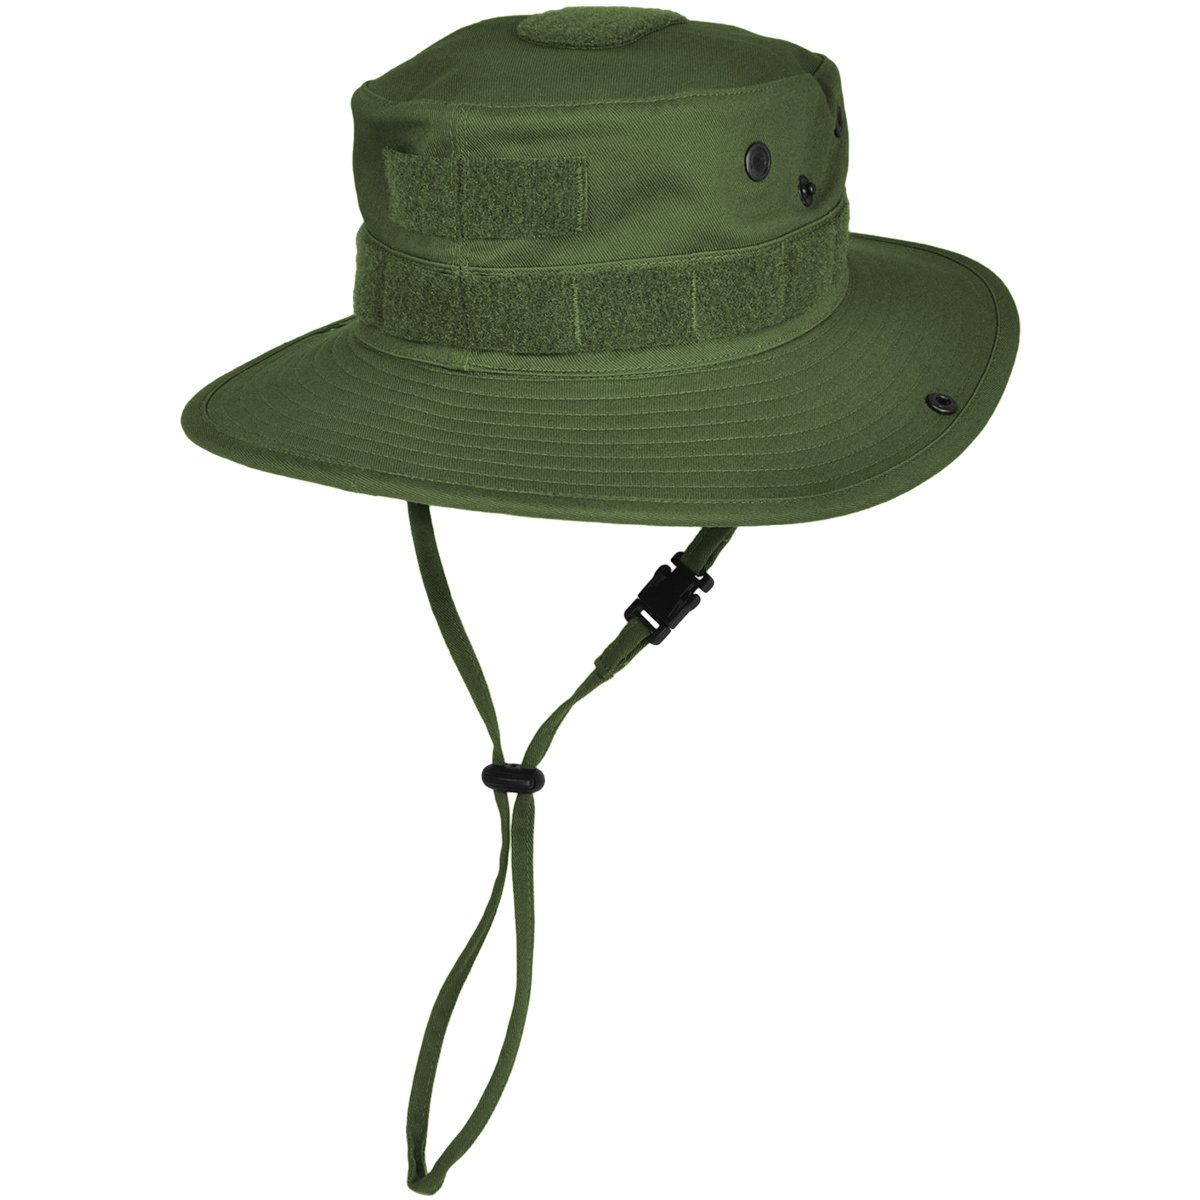 HAZARD 4 SunTac Cotton Boonie Hat with Molle, OD Green, Regular